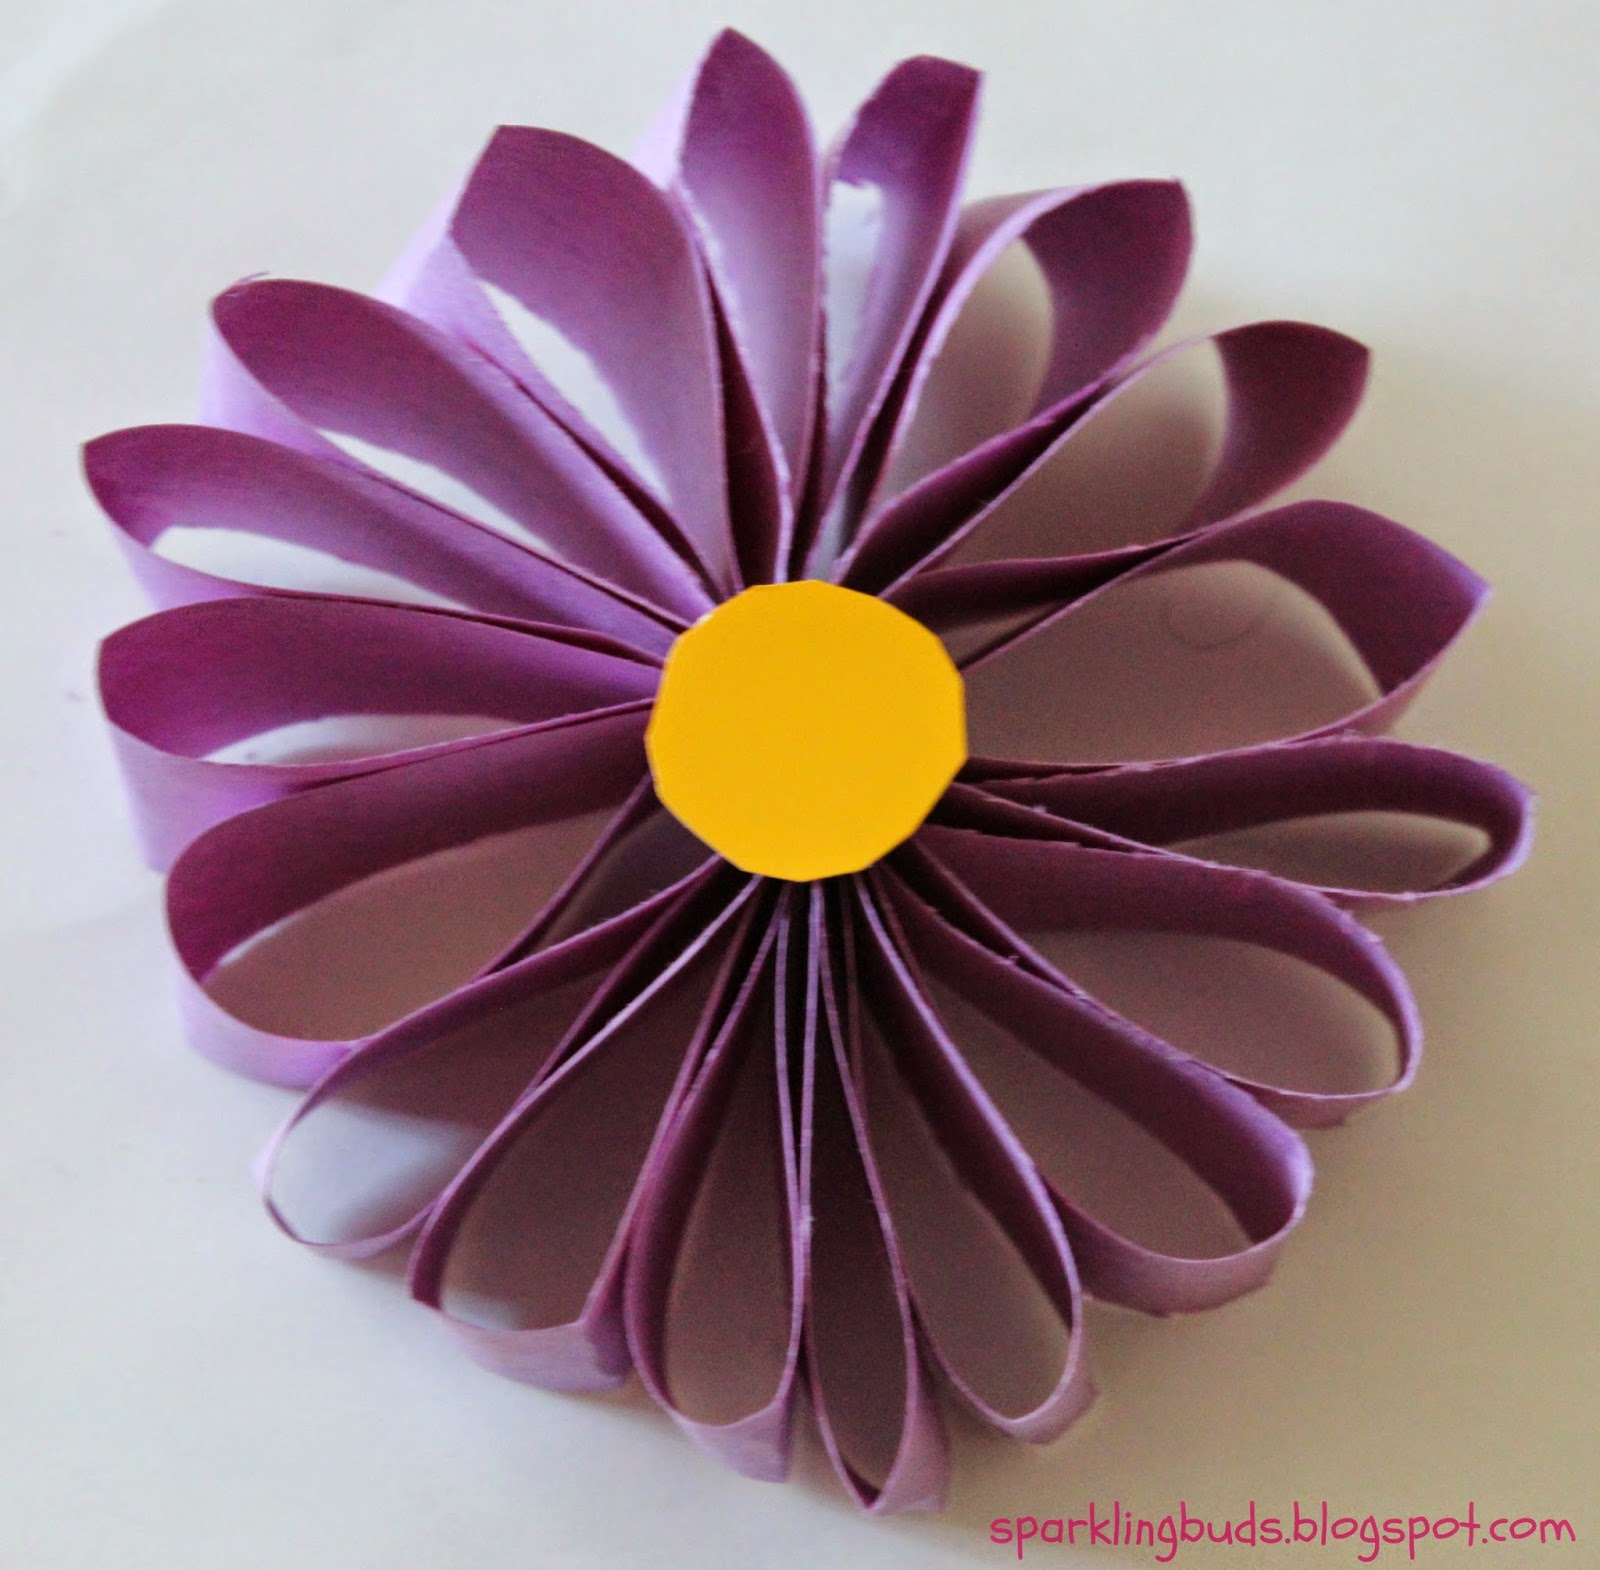 How to make a simple flower with paper juvecenitdelacabrera easy paper flower sparklingbuds how mightylinksfo